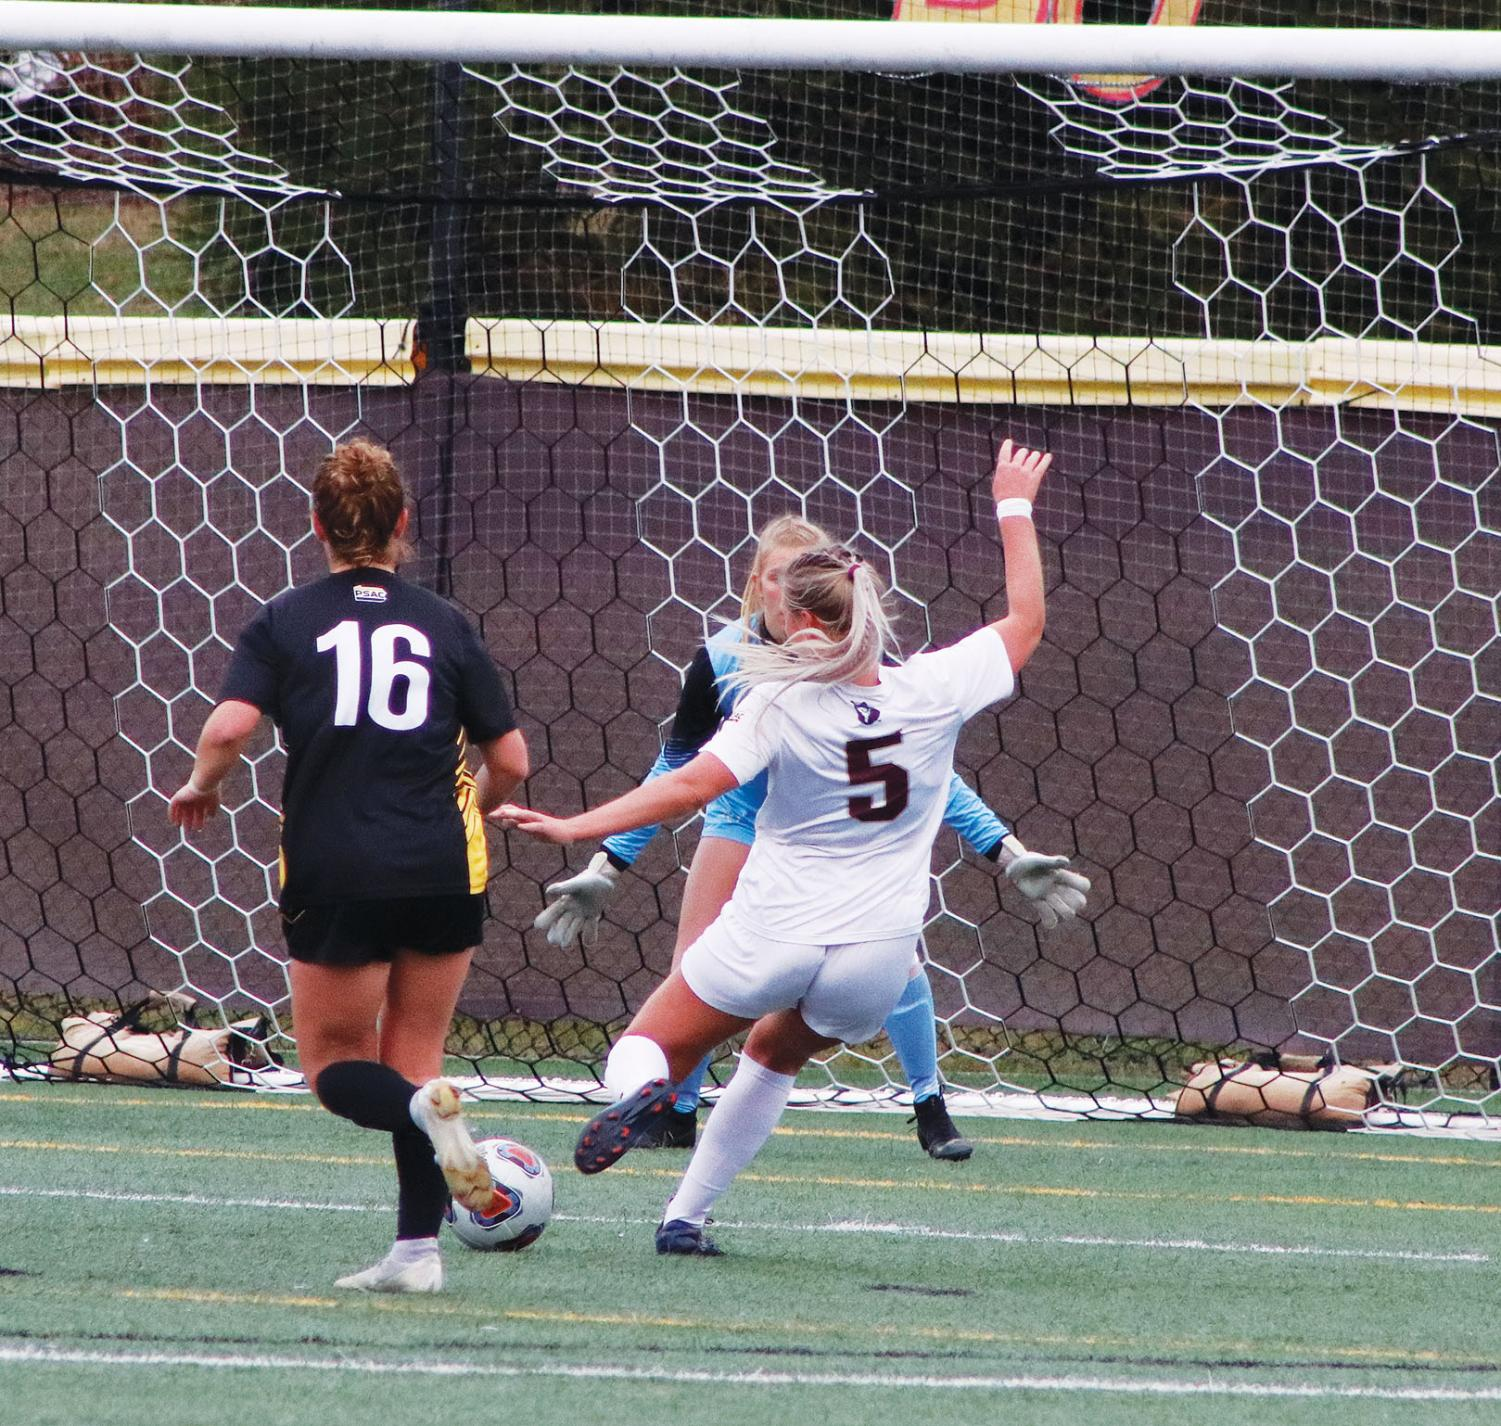 Junior Lauren Hoelke rips in the opening goal in the Huskies 4-0 second round win.